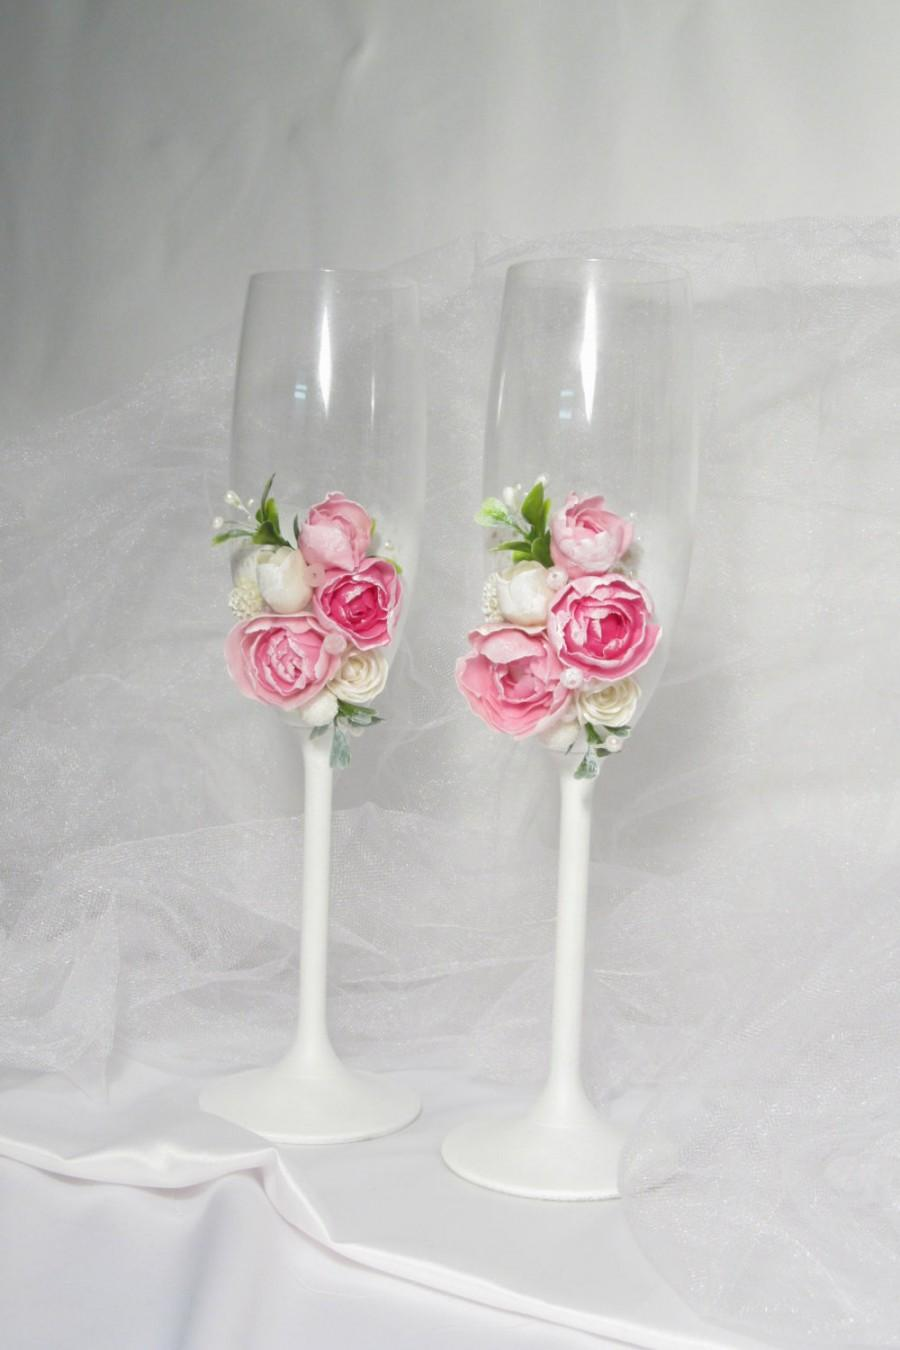 Hochzeit - Wedding flutes Glasses with pink roses Toasting champagne glasses Mr and Mrs wedding glasses Engagement flutes Pink toasting glasses